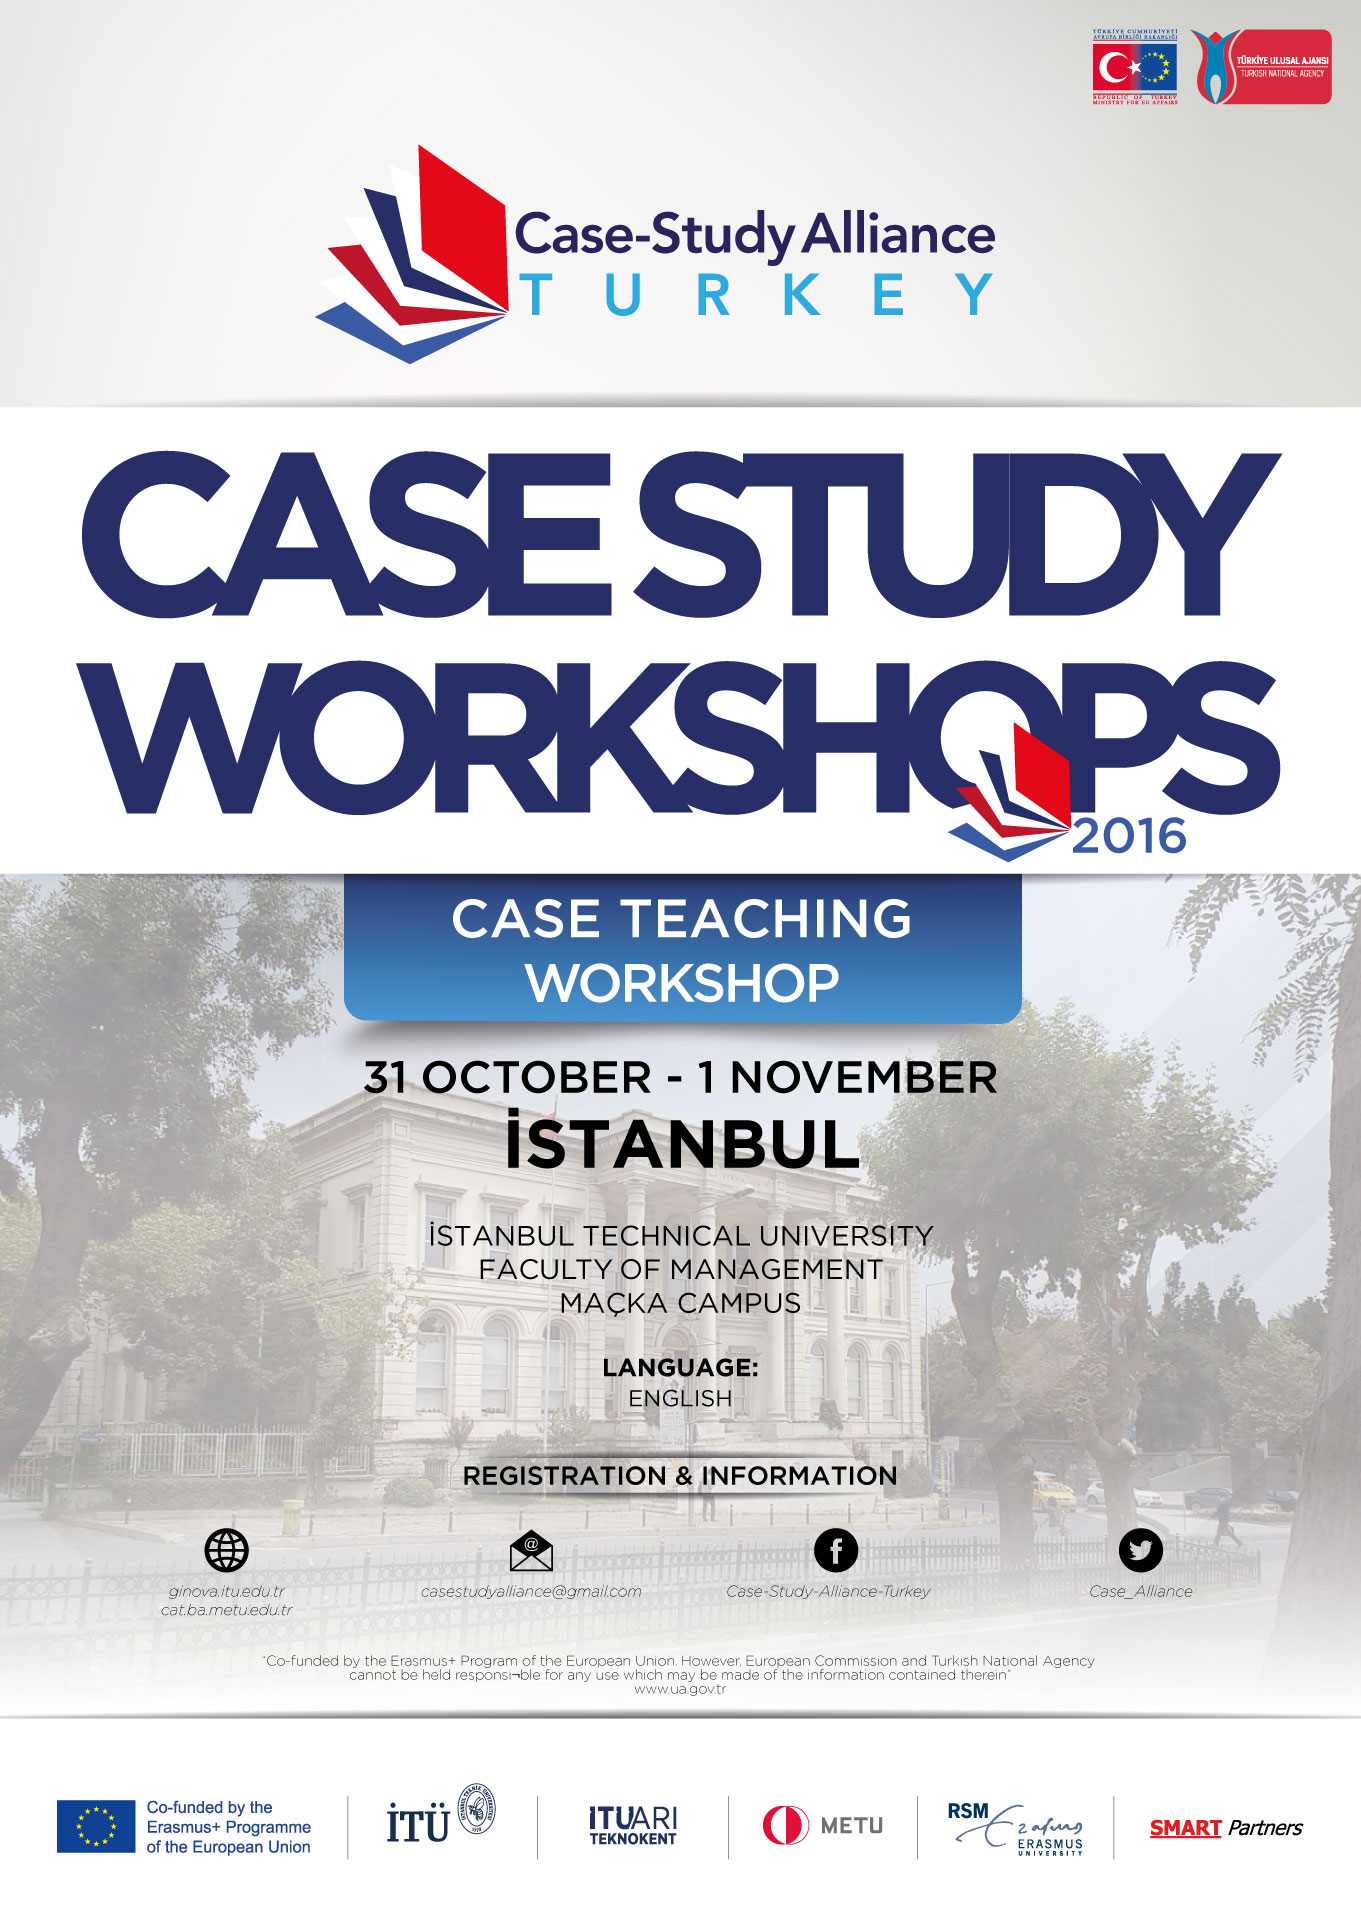 Case Teaching Workshop